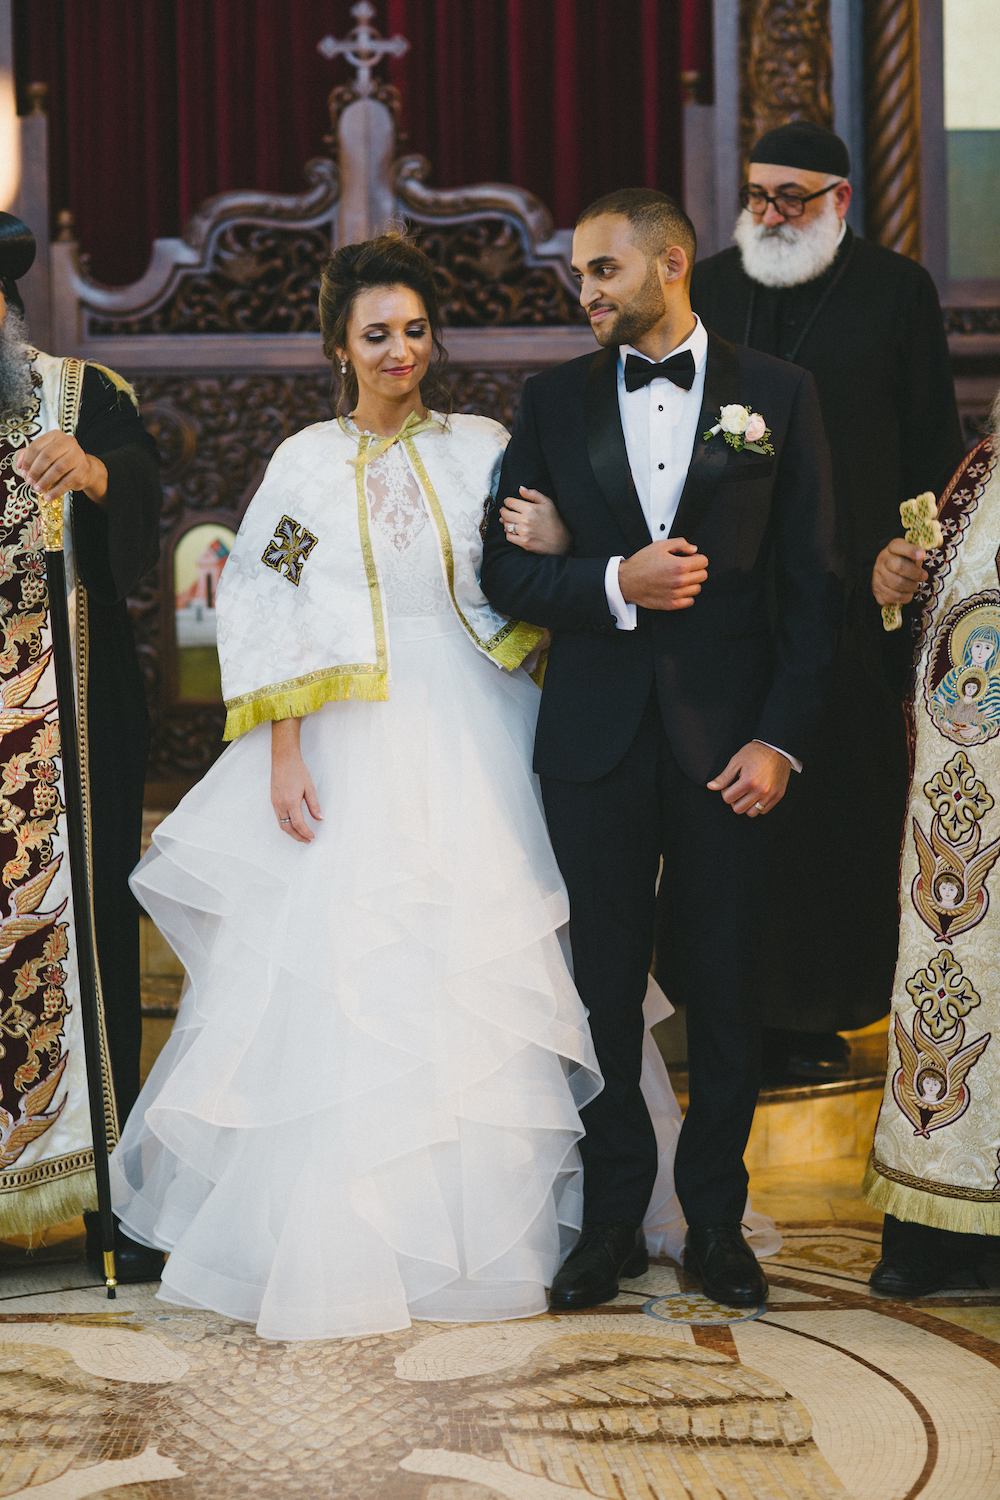 Egyptian Wedding With Traditional Ceremony And Upscale Style